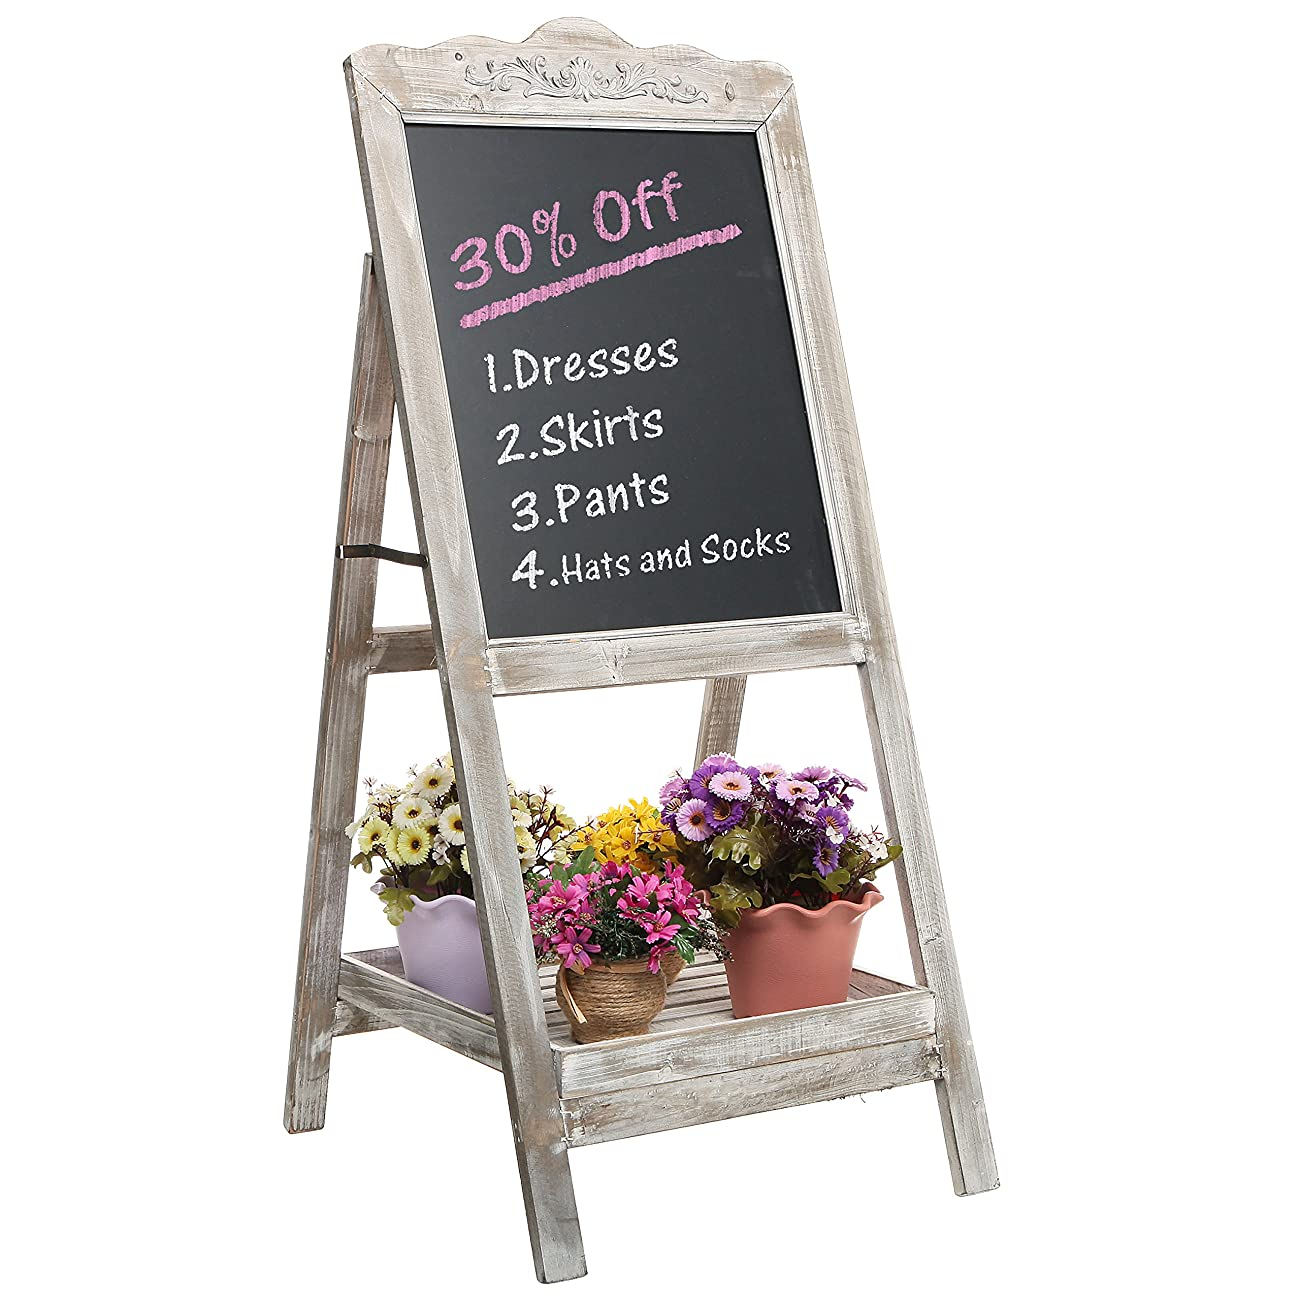 Decorative Vintage White Washed Brown Wood Large Freestanding Chalkboard Message Board Easel - MyGift 0